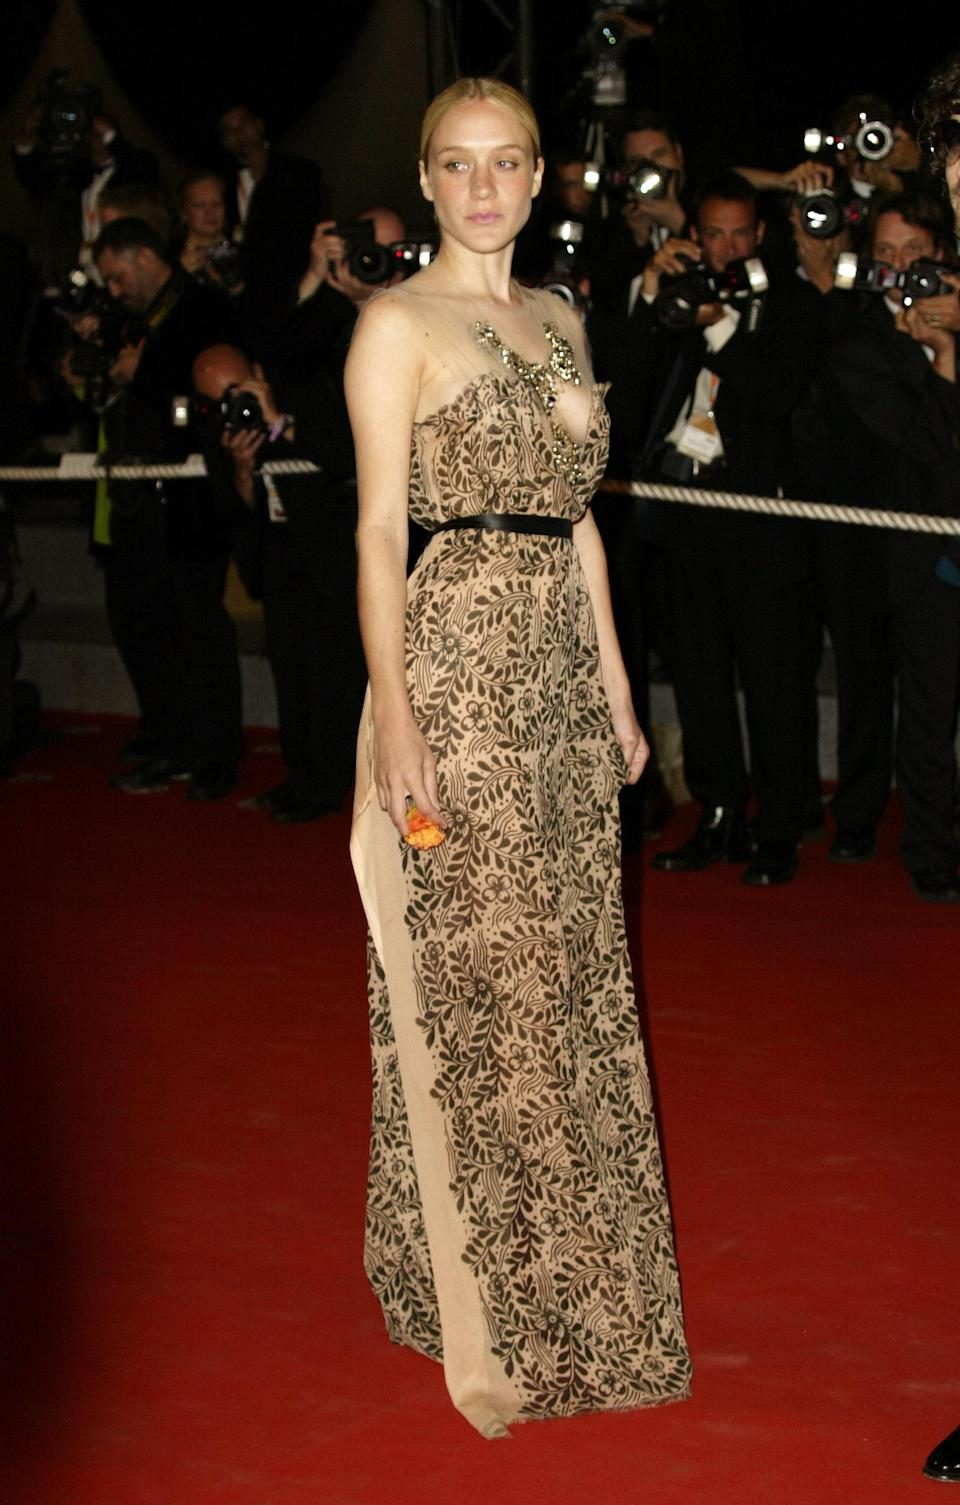 Chloë Sevigny at the 56th Cannes Film Festival in 2003.